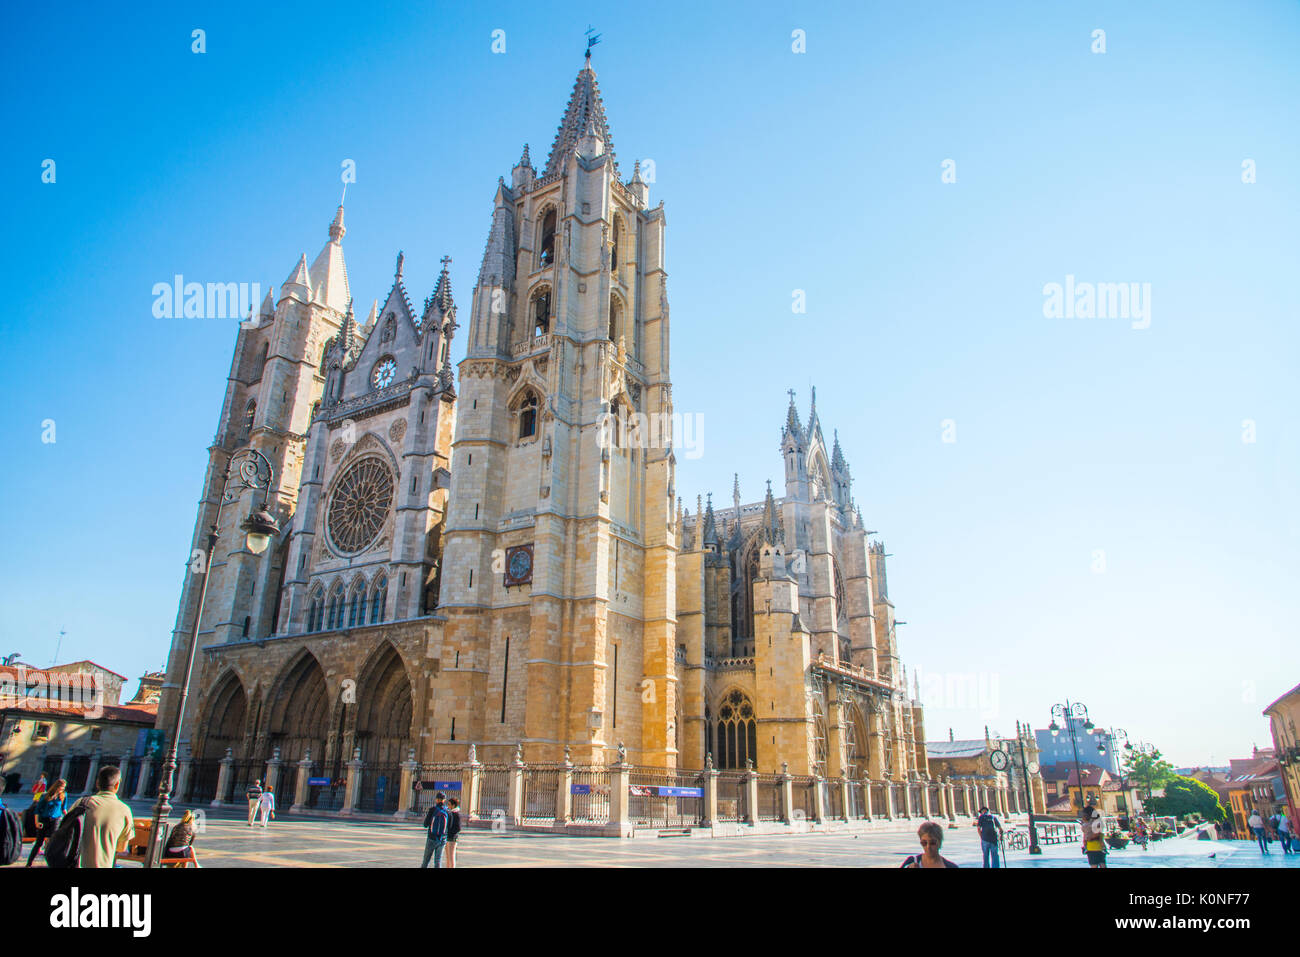 Facade of the Gothic cathedral, UNESCO Patrinomy. Leon, Spain. - Stock Image